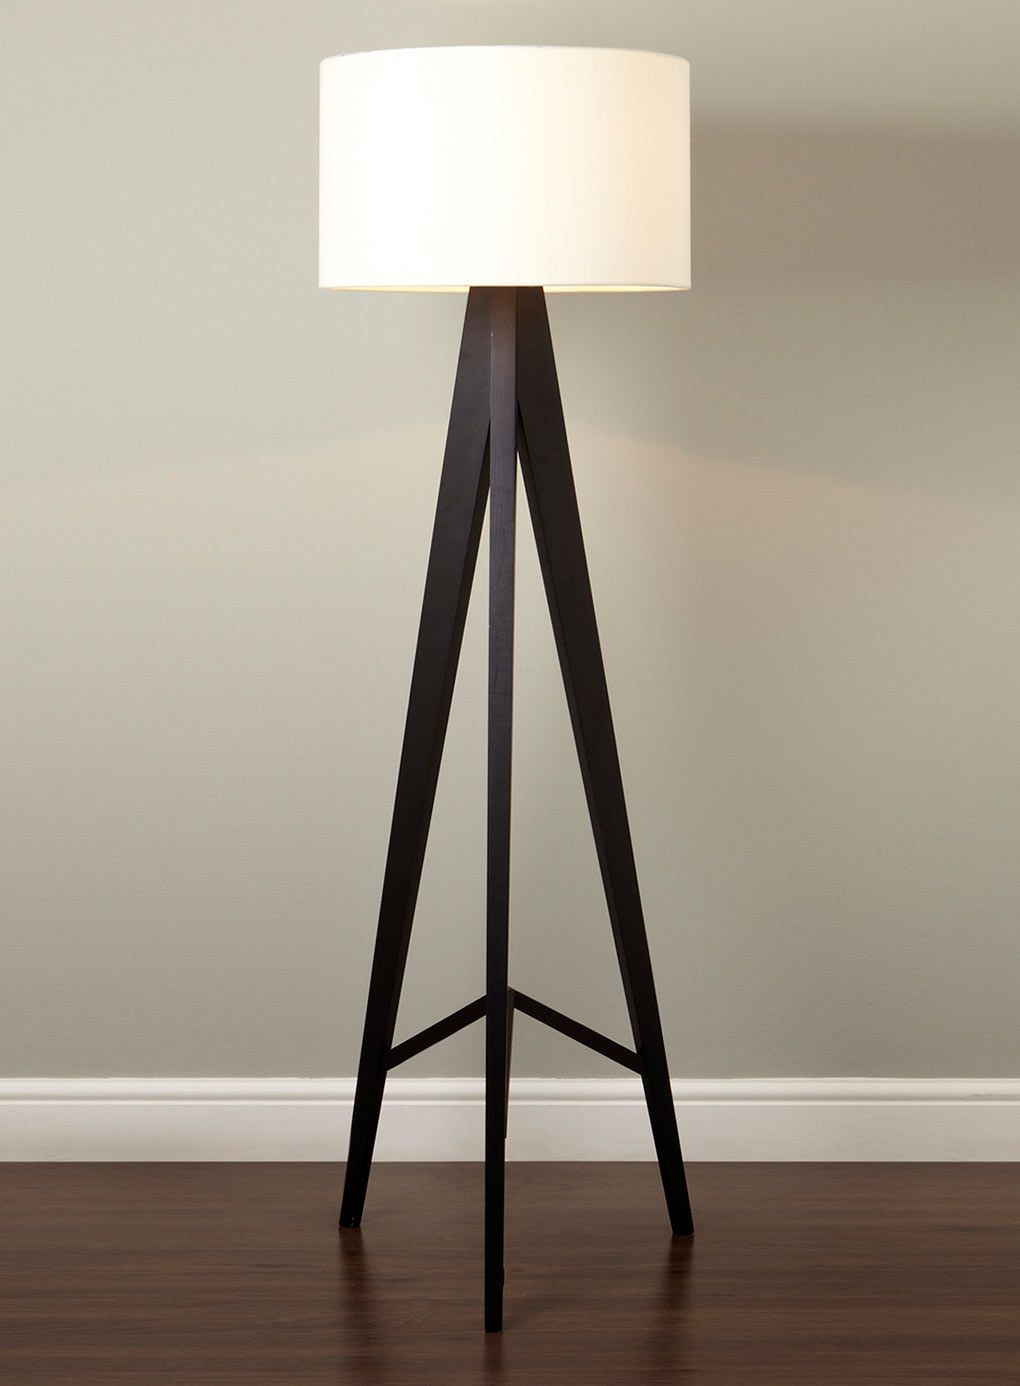 size lighting of base with lamp wood table lamps shade height adjustable top best new choices original modern metal medium floor tripod argos in wooden